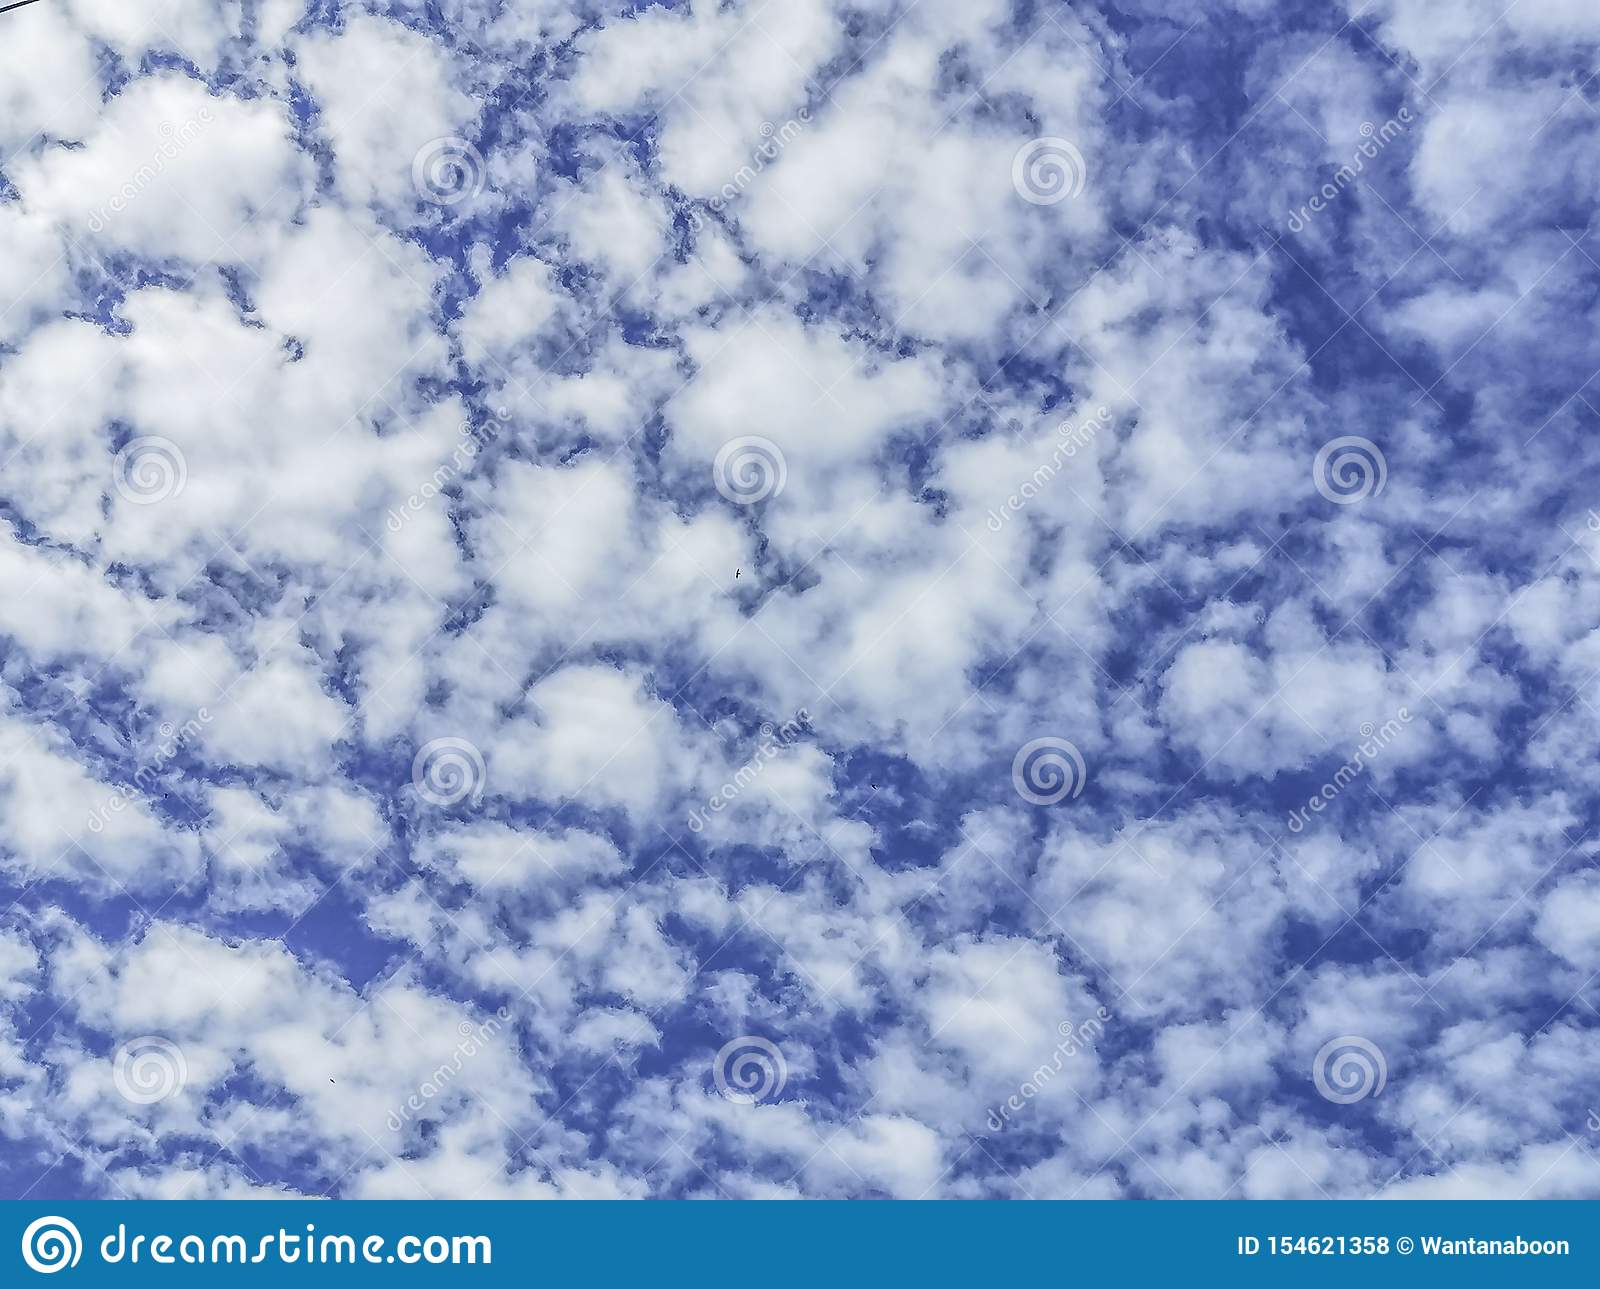 Small white clouds Scattered throughout the blue sky, White cloud in the blue sky, . Beautiful nature background